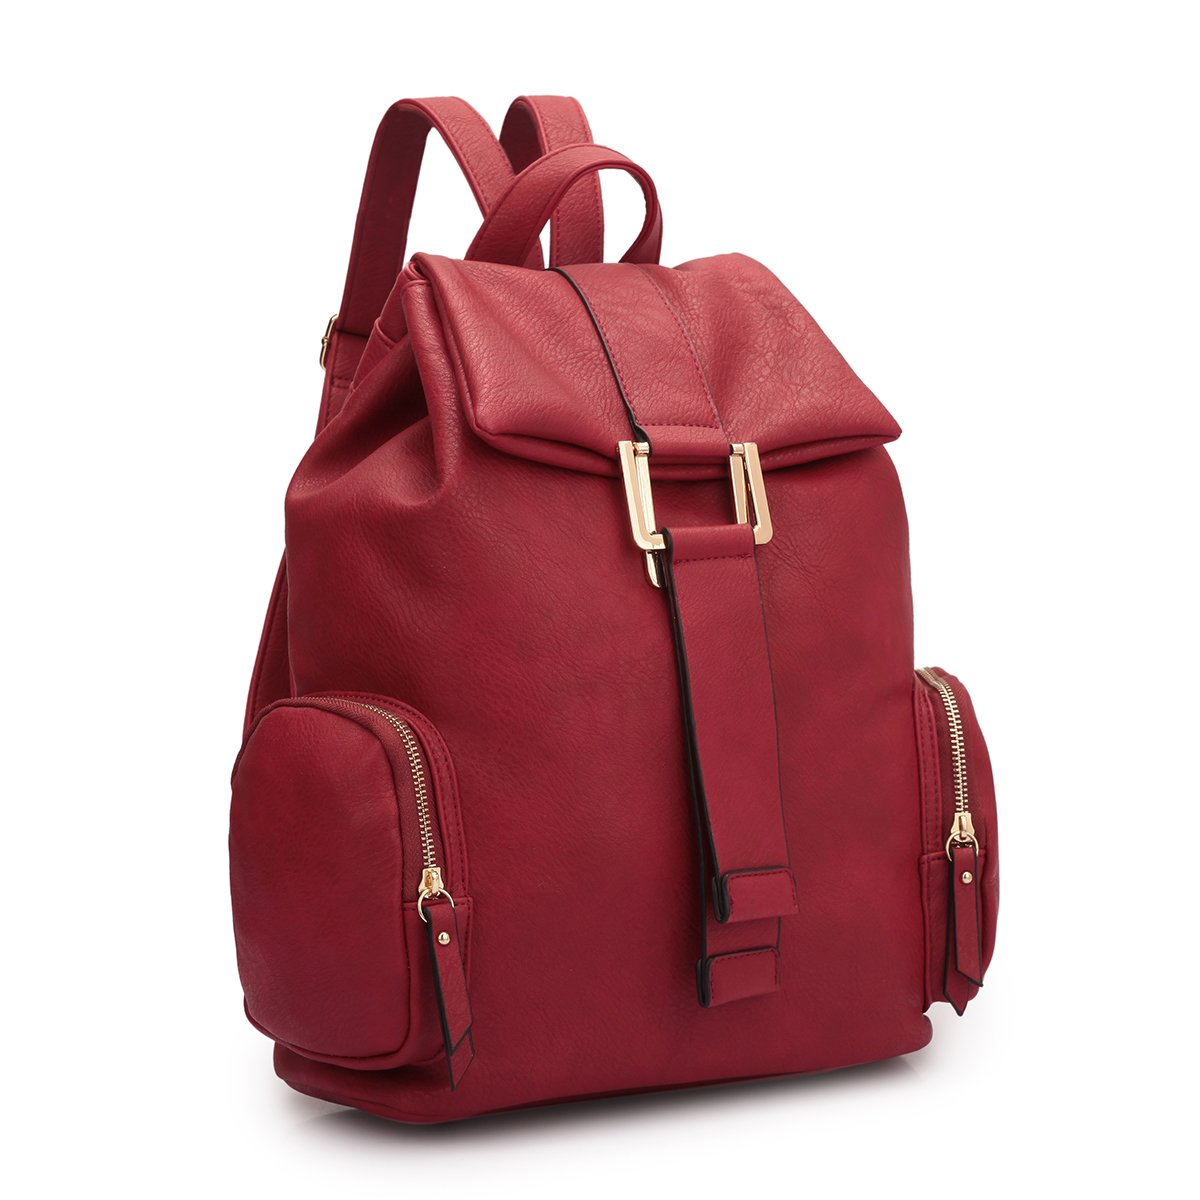 Women Fashion Faux Leather Backpack Purse Ladies Casual Drawstring Travel Rucksack Shoulder Bags